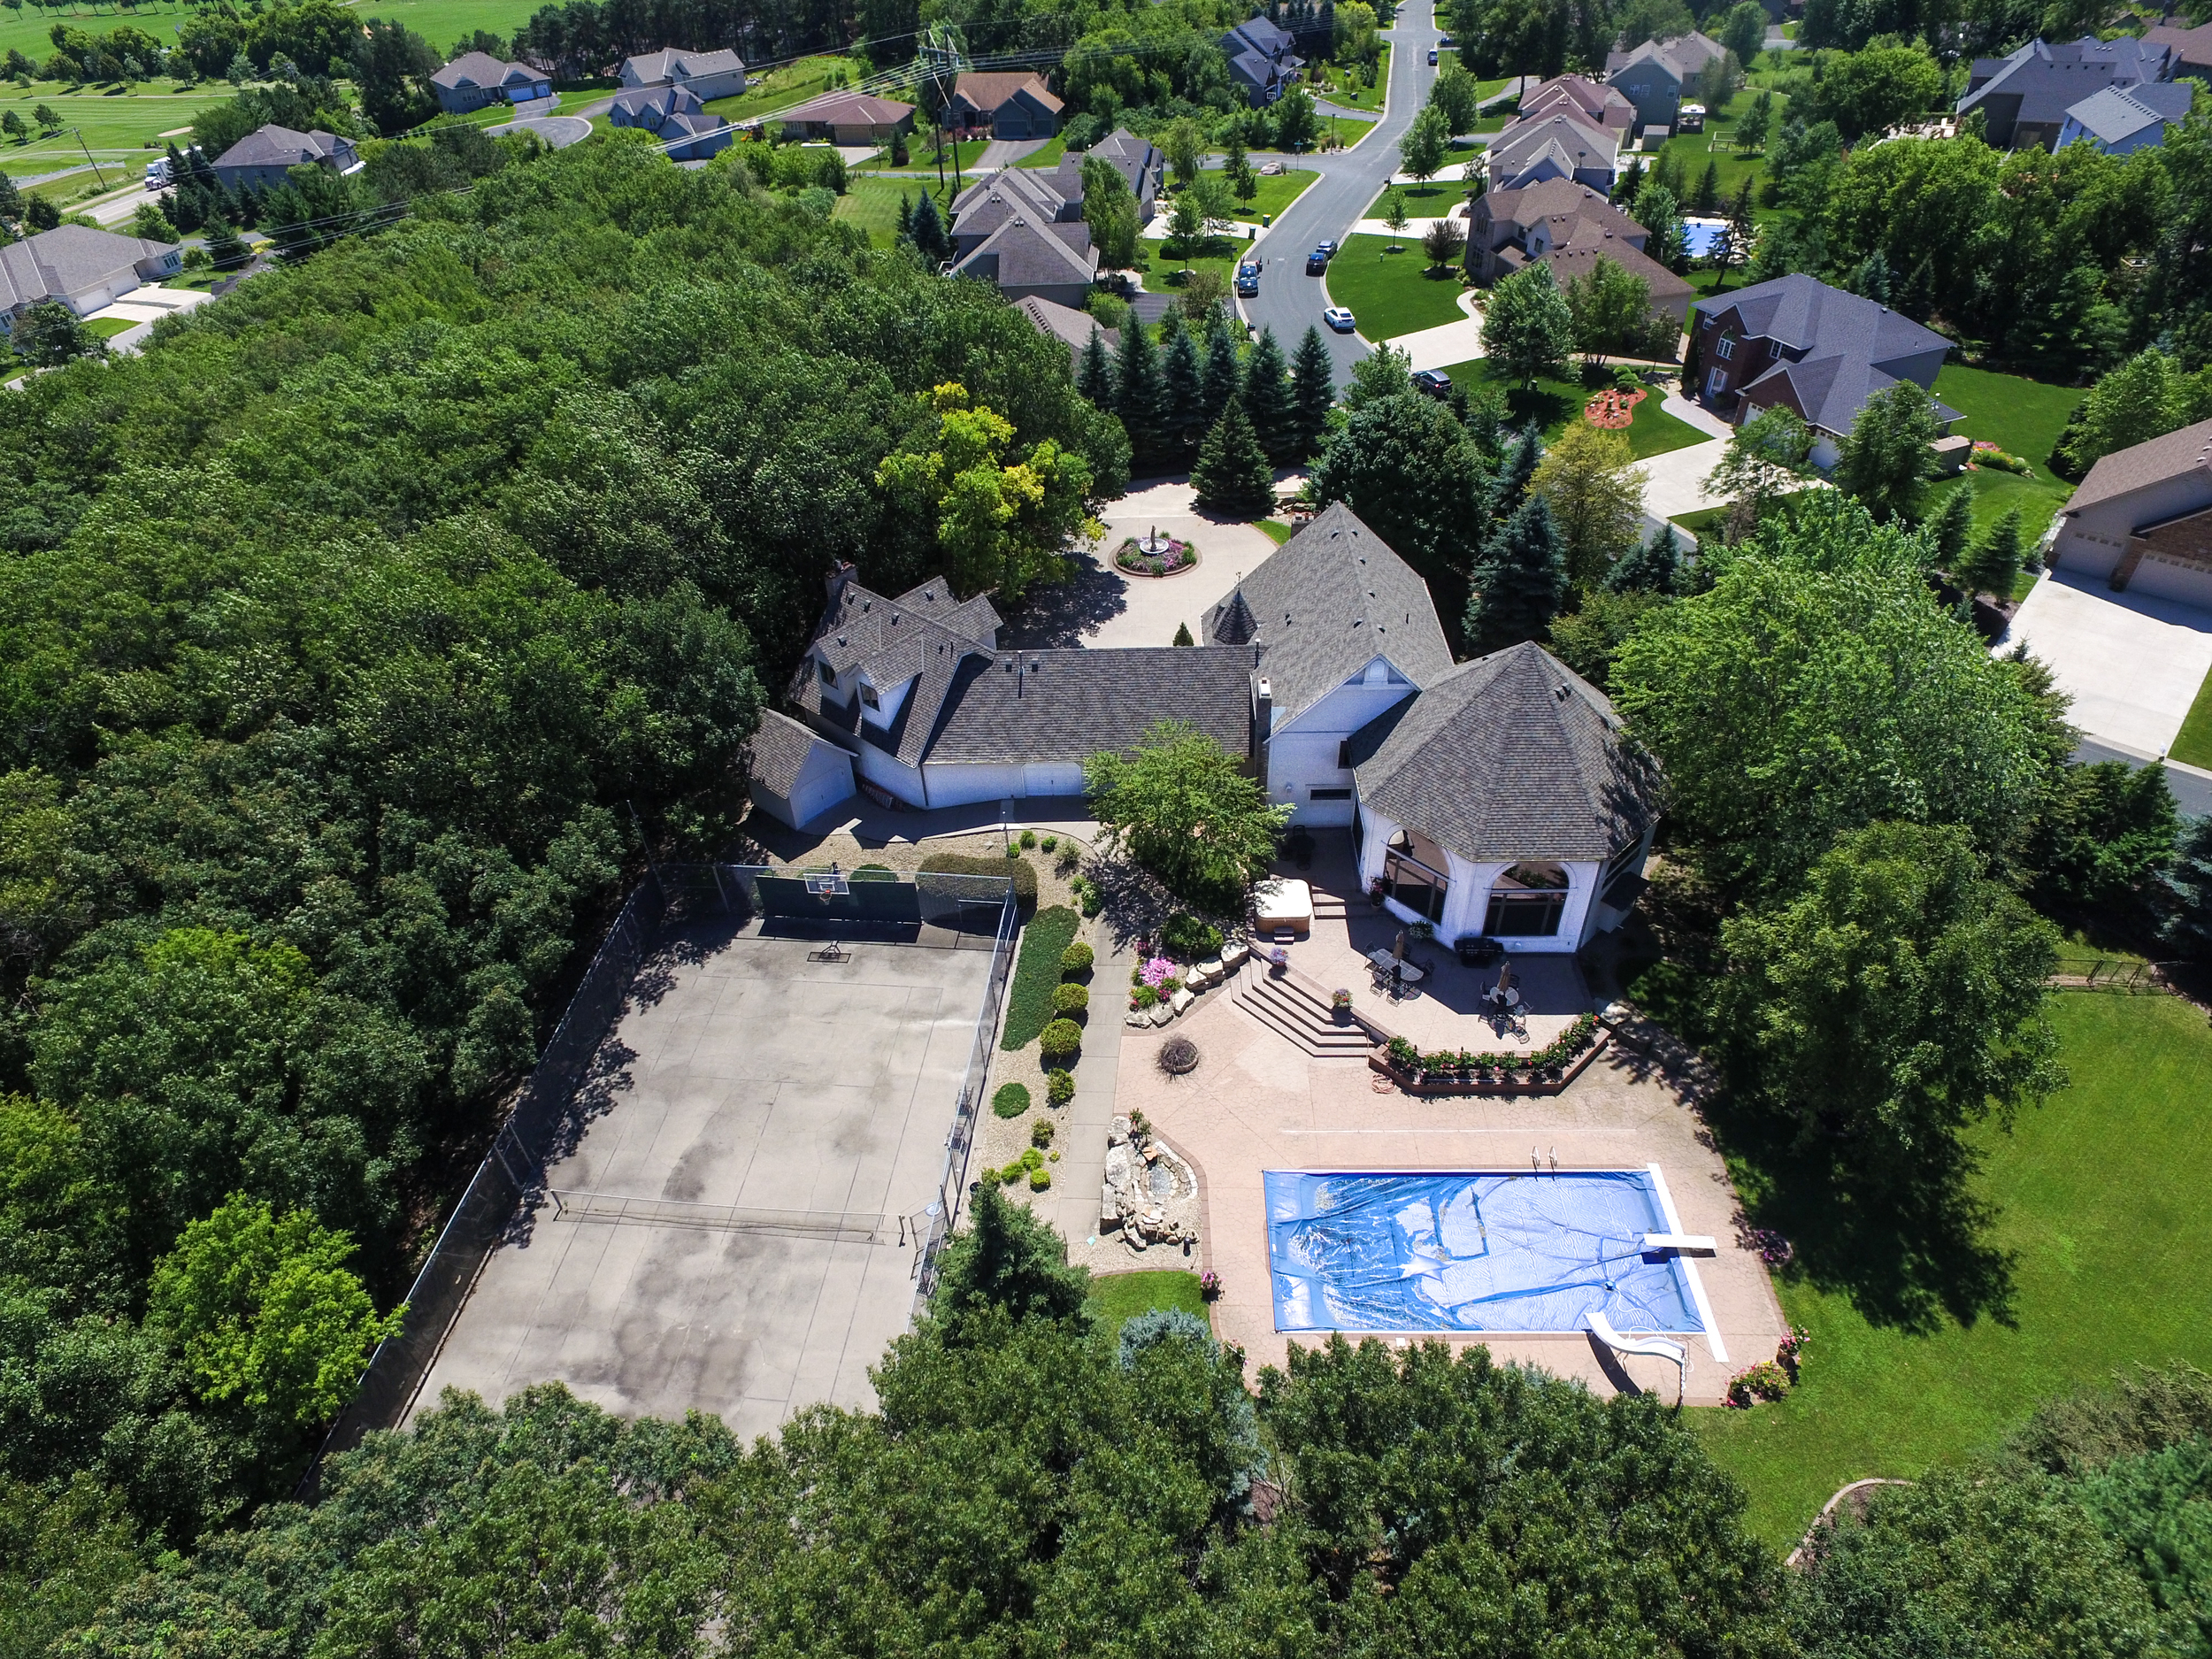 Drones, aerial residential real estate and pools photography